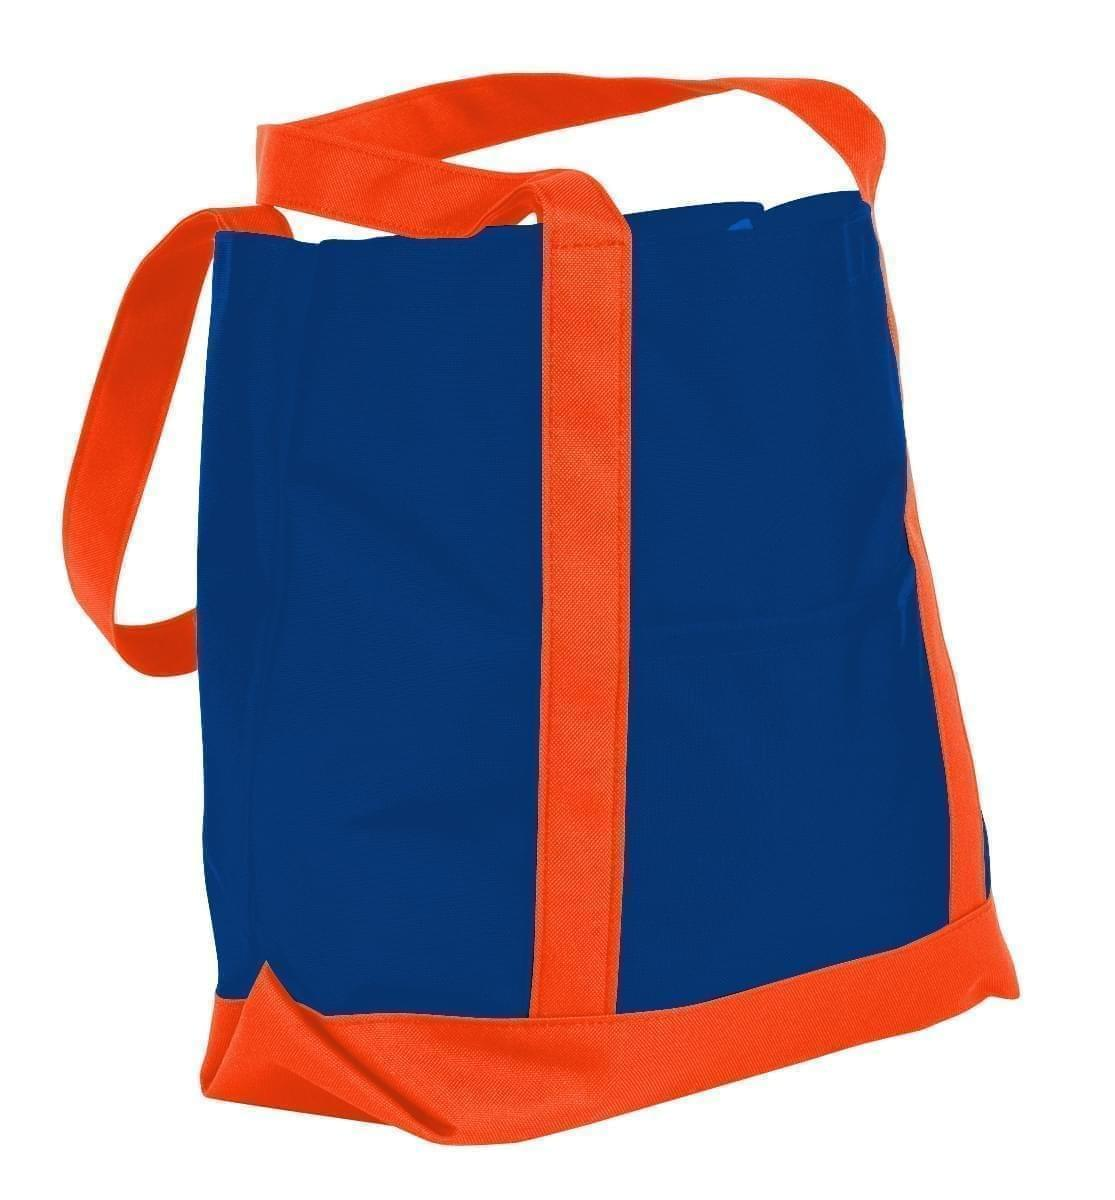 USA Made Canvas Fashion Tote Bags, Royal Blue-Orange, XAACL1UAFJ